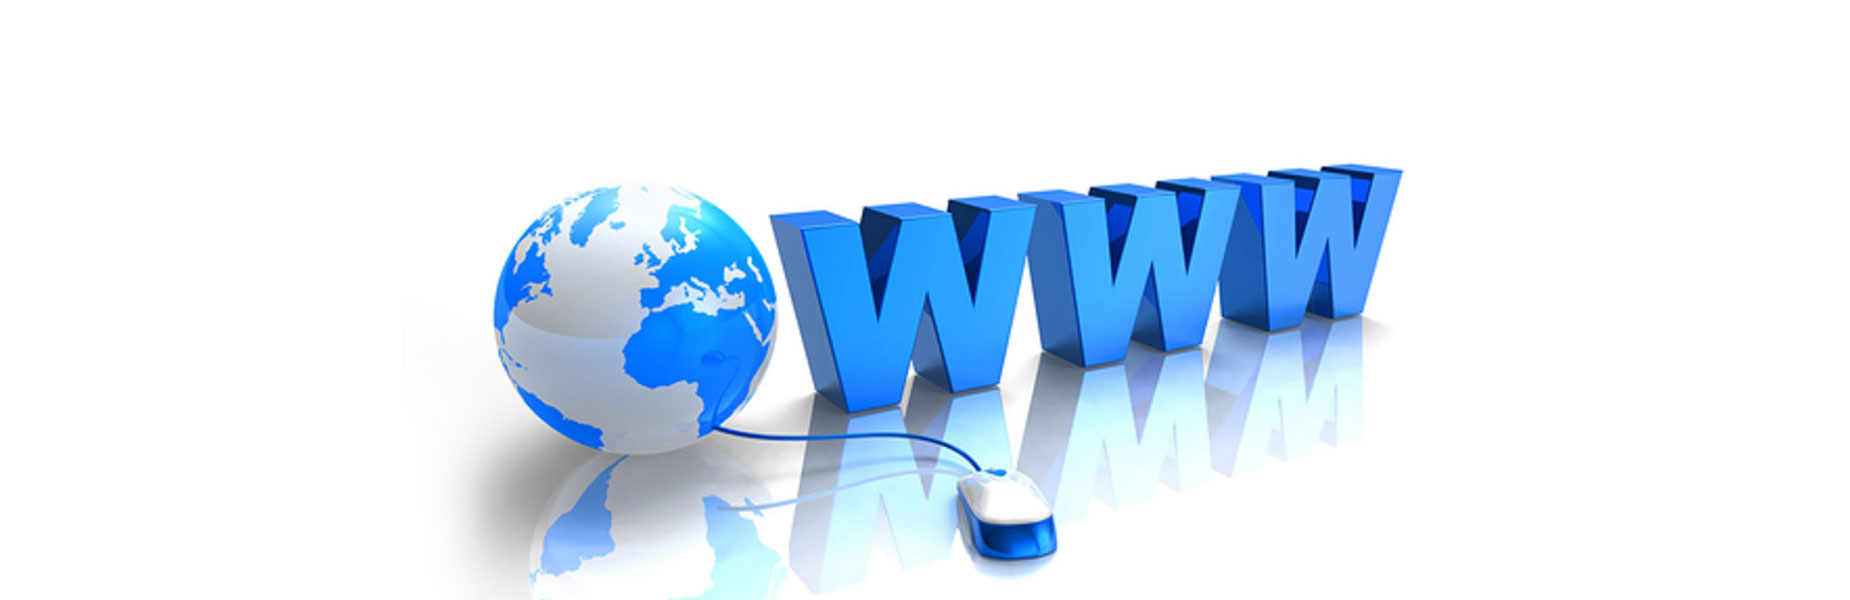 Affordable Calgary Web offers all the web services you need, all under one roof!